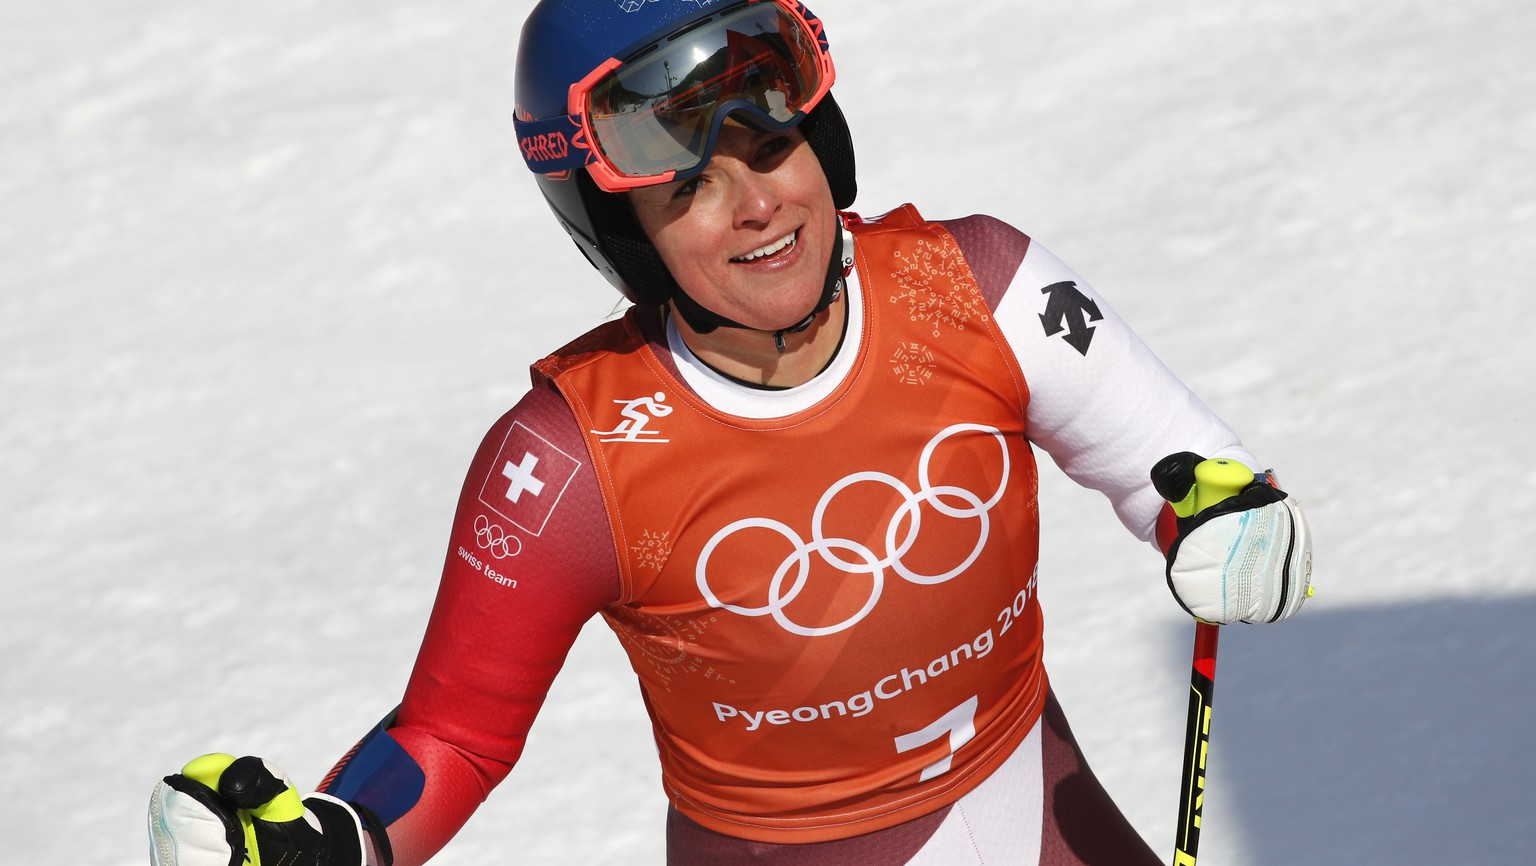 Switzerland's Lara Gut smiles after finishing women's downhill training at the 2018 Winter Olympics in Jeongseon, South Korea, Tuesday, Feb. 20, 2018. (AP Photo/Christophe Ena)